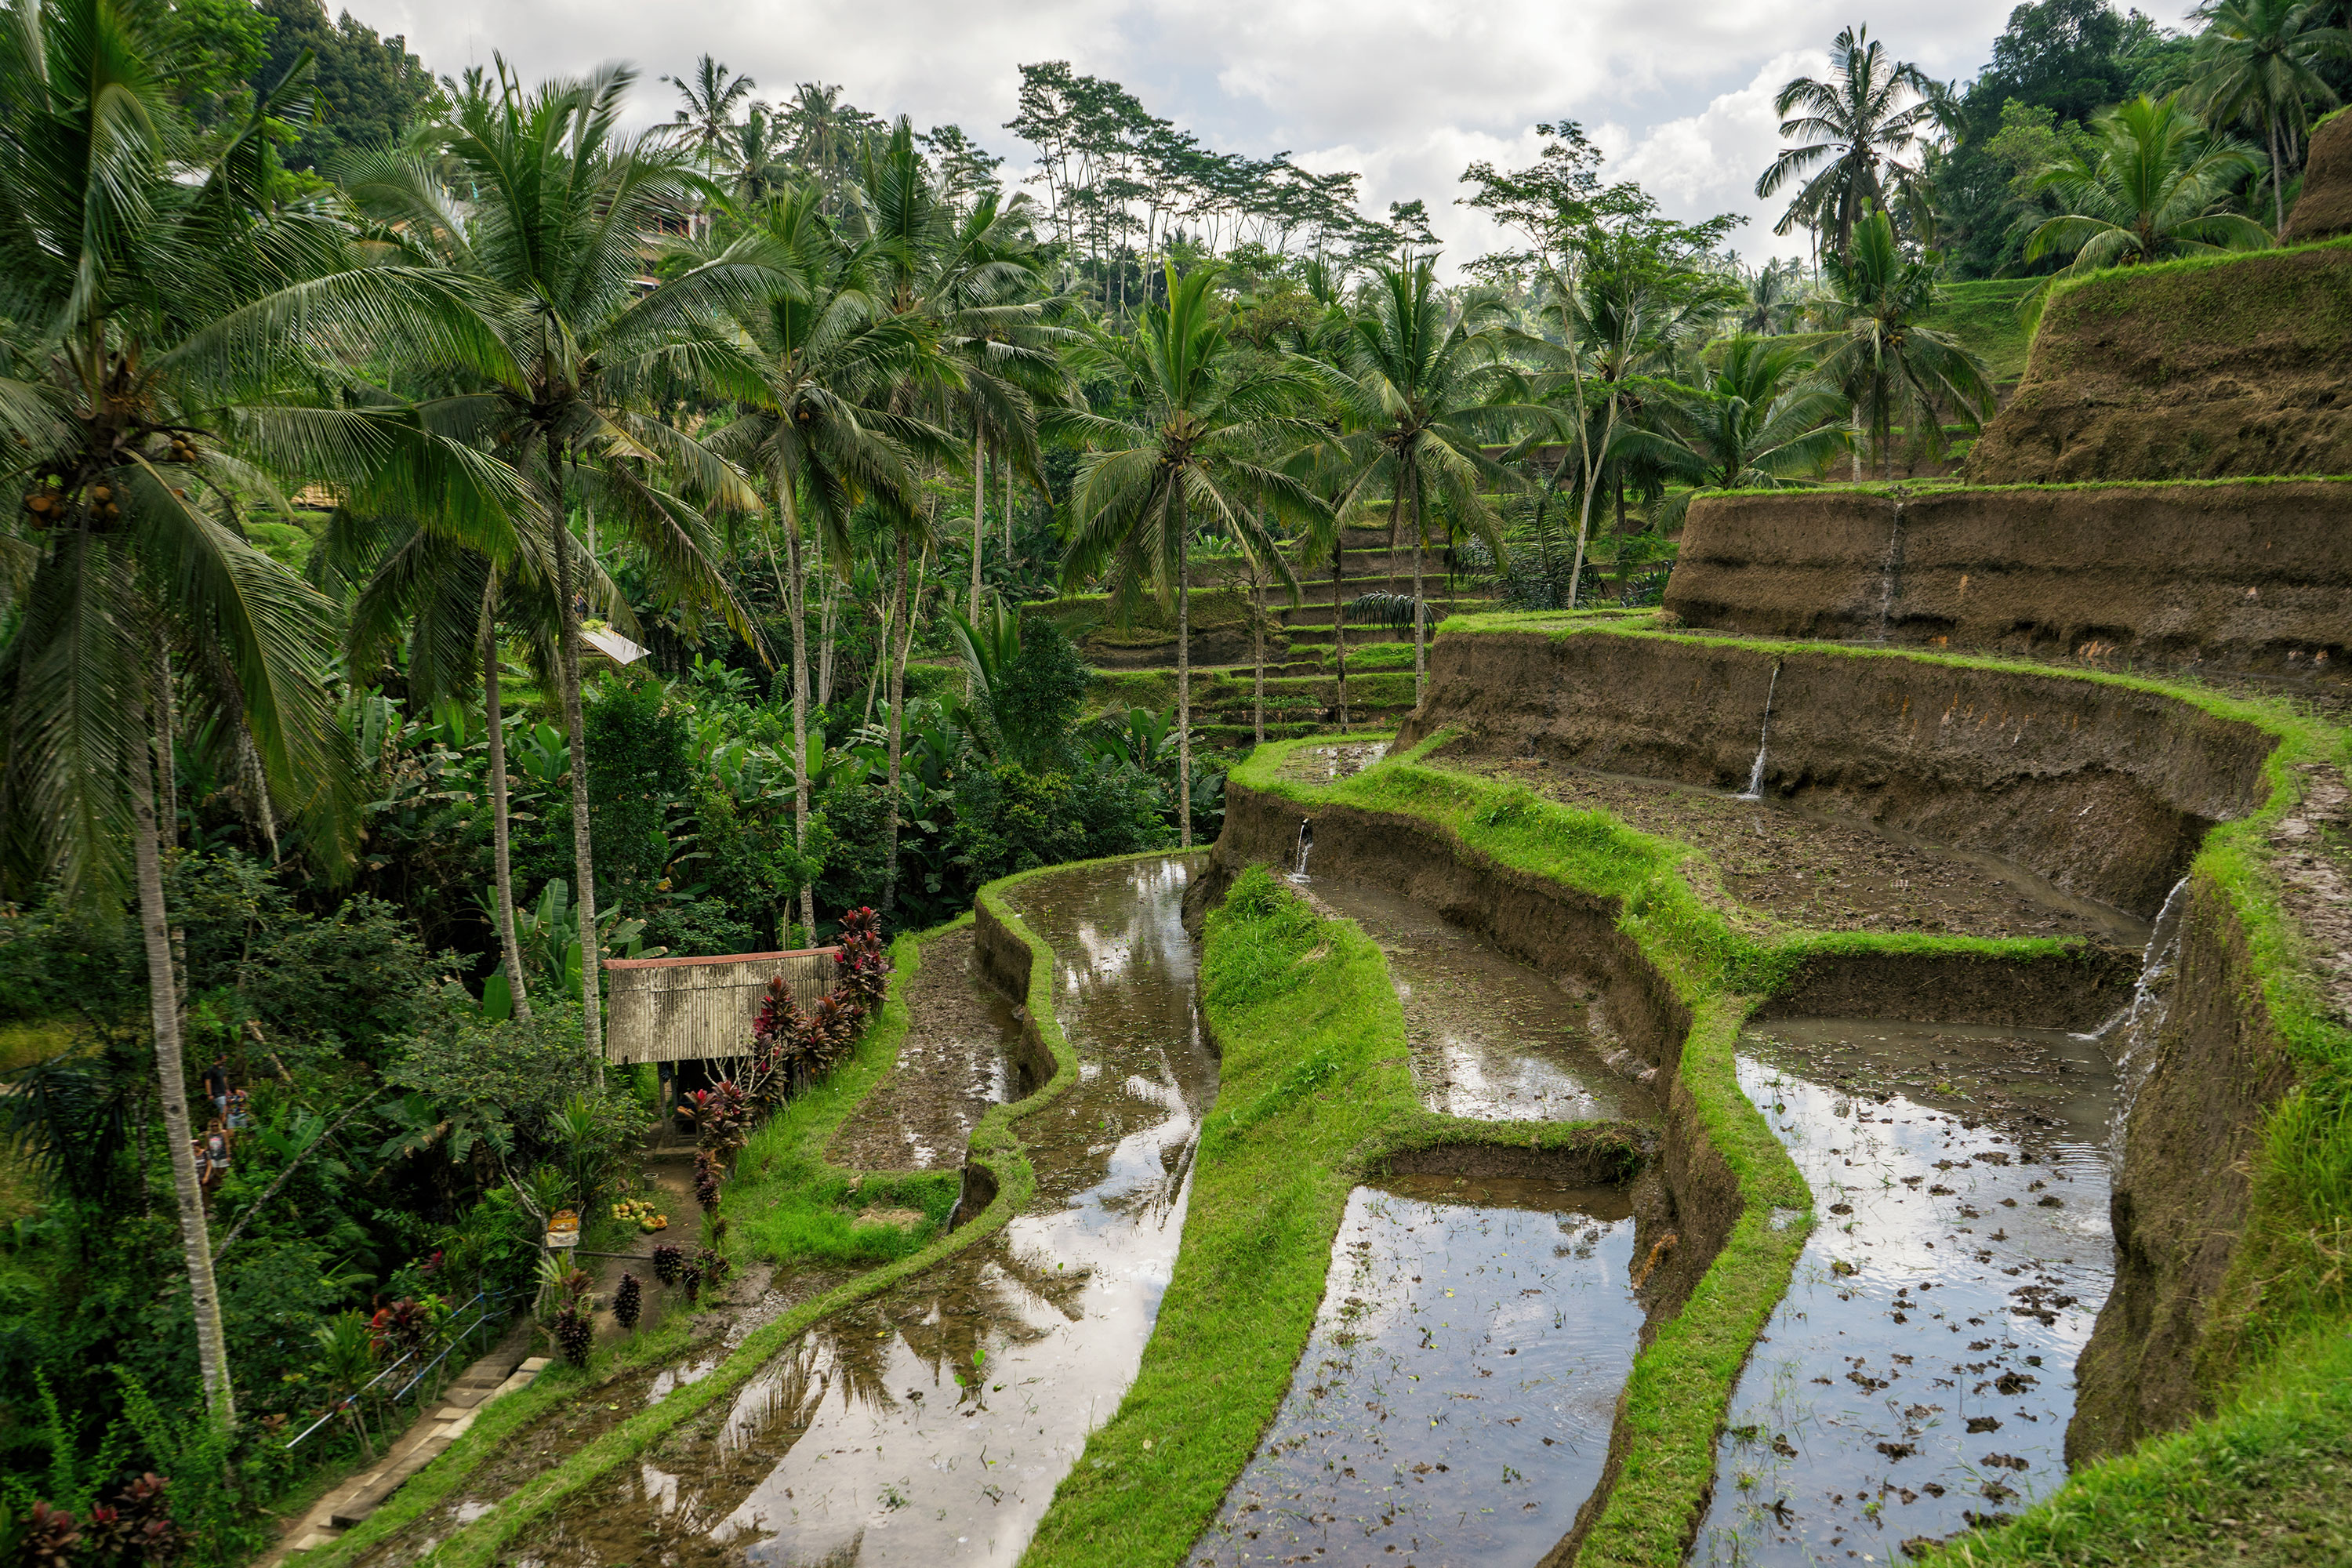 Bali Ubud Tegalalang Rice Terraces View Of Rice Paddies